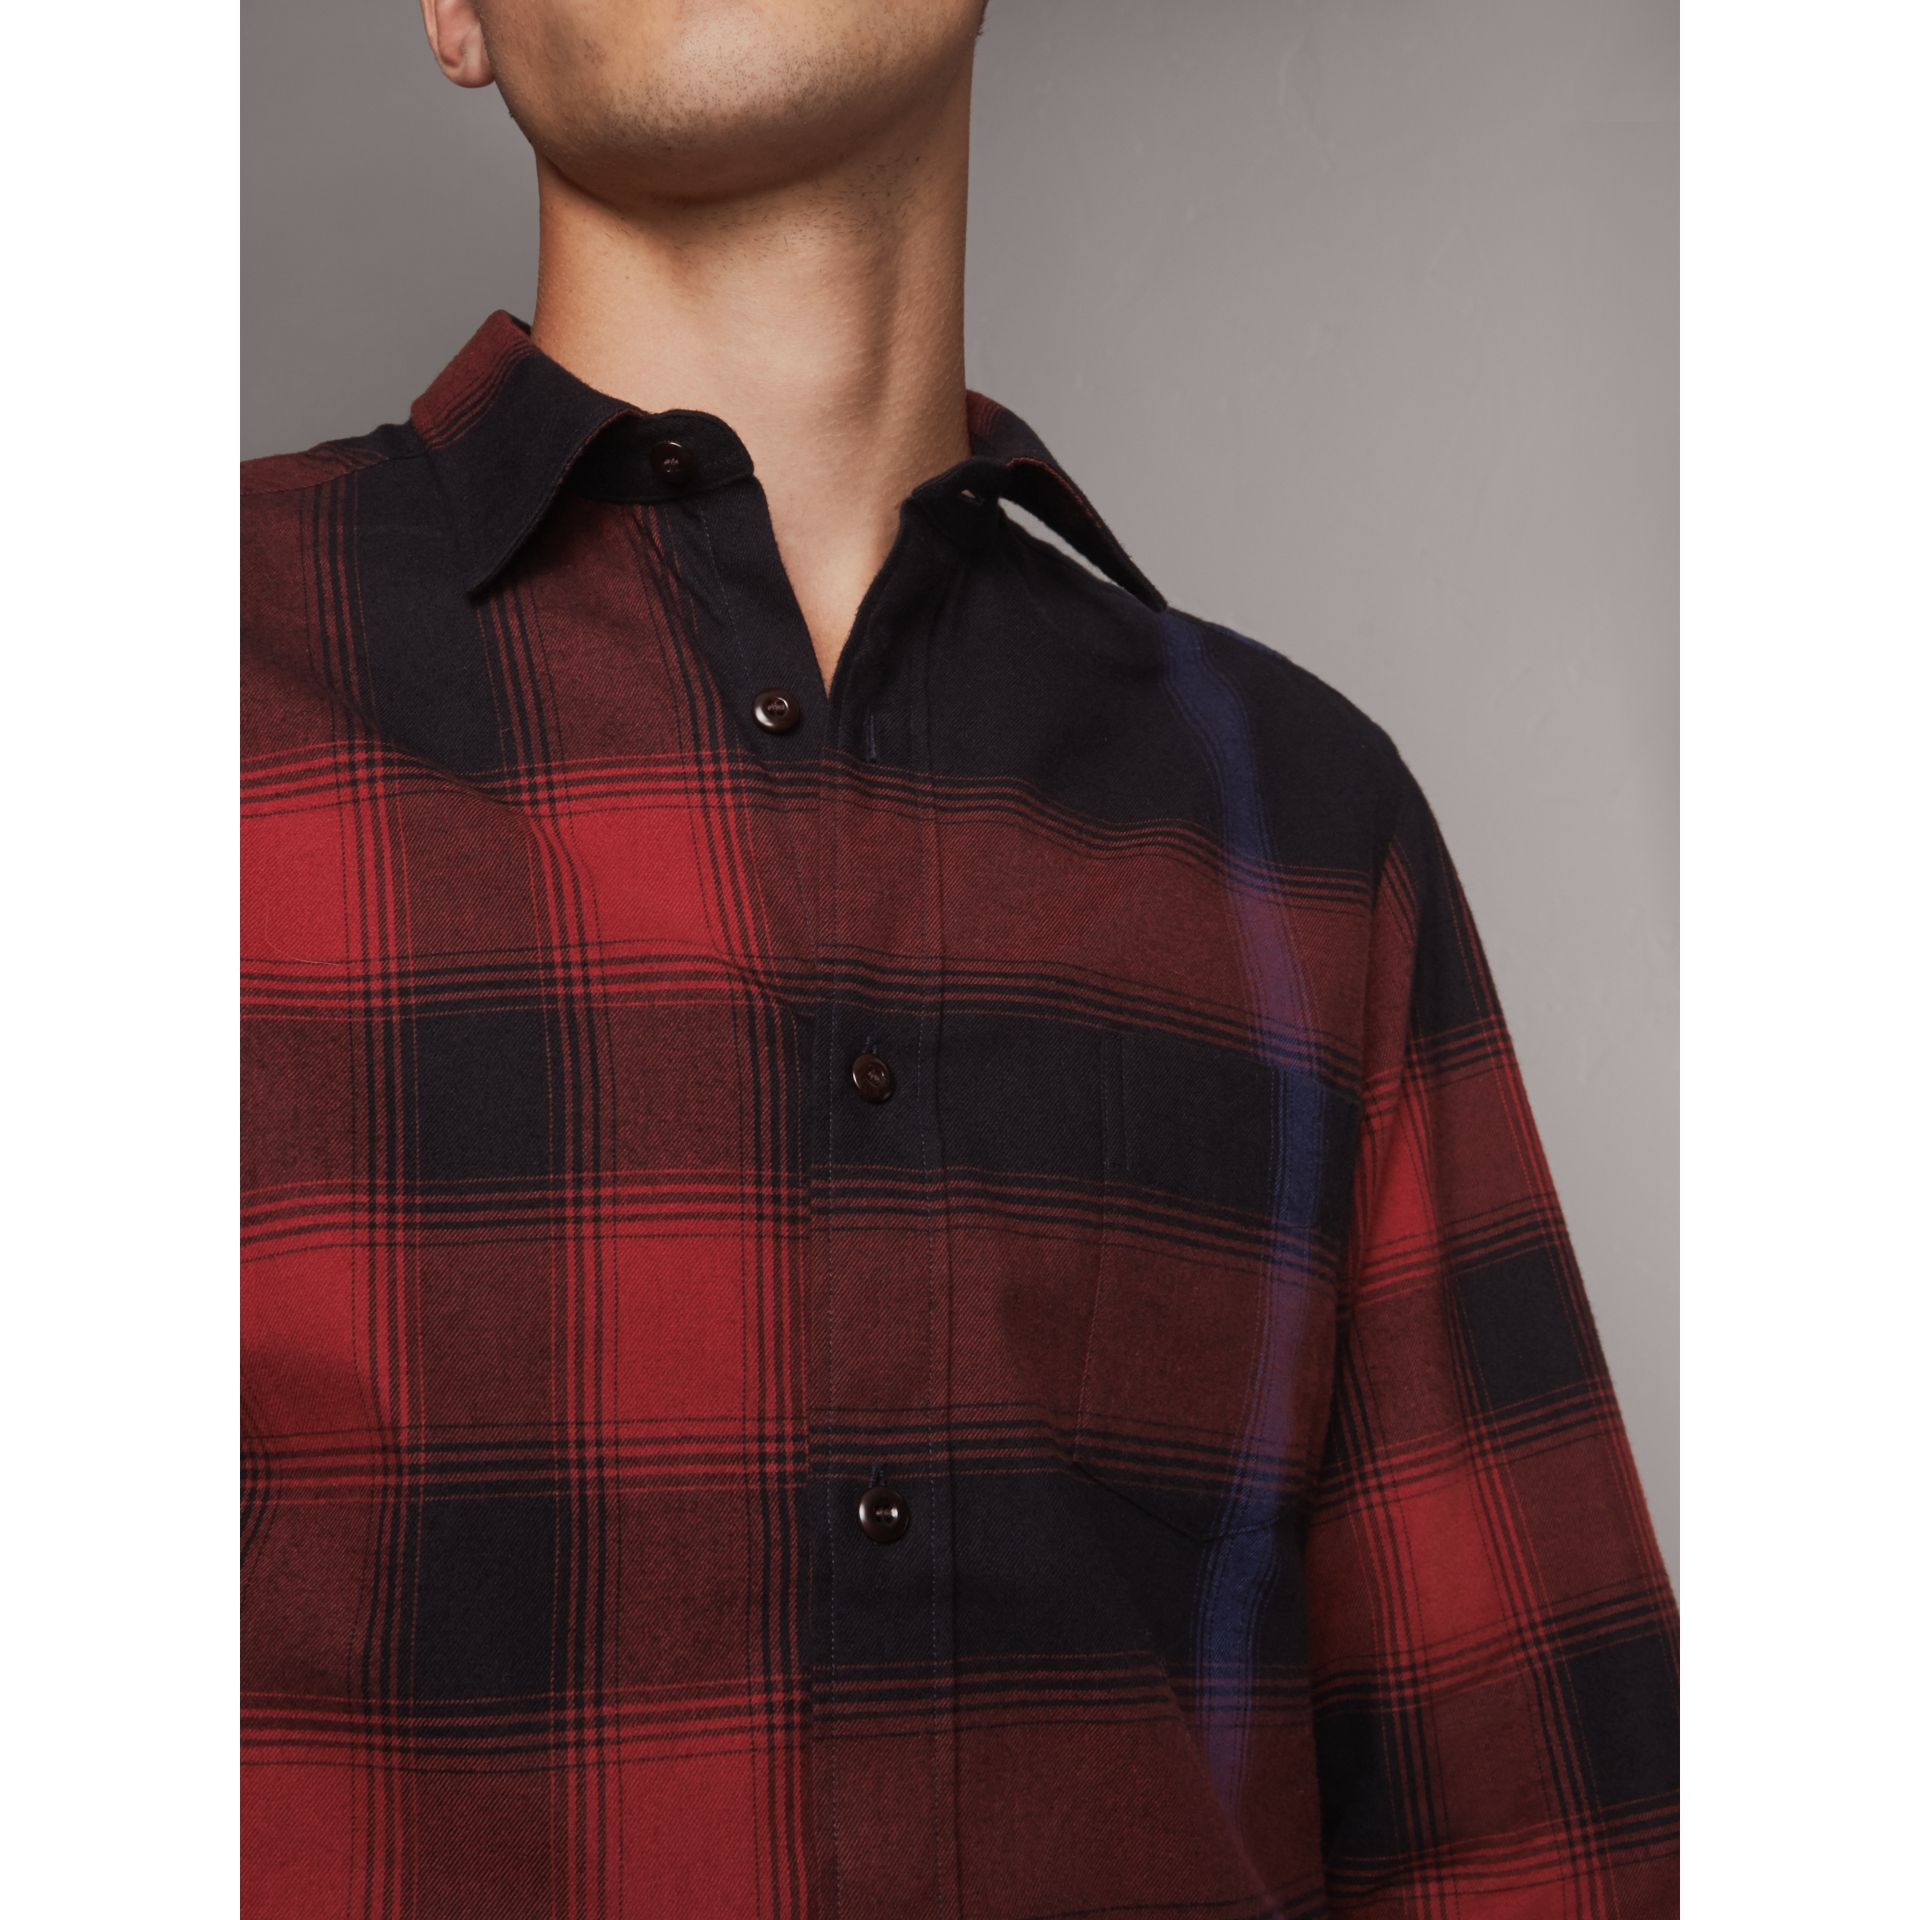 Ombré Check Cotton Flannel Shirt in Crimson Red - Men | Burberry - gallery image 2